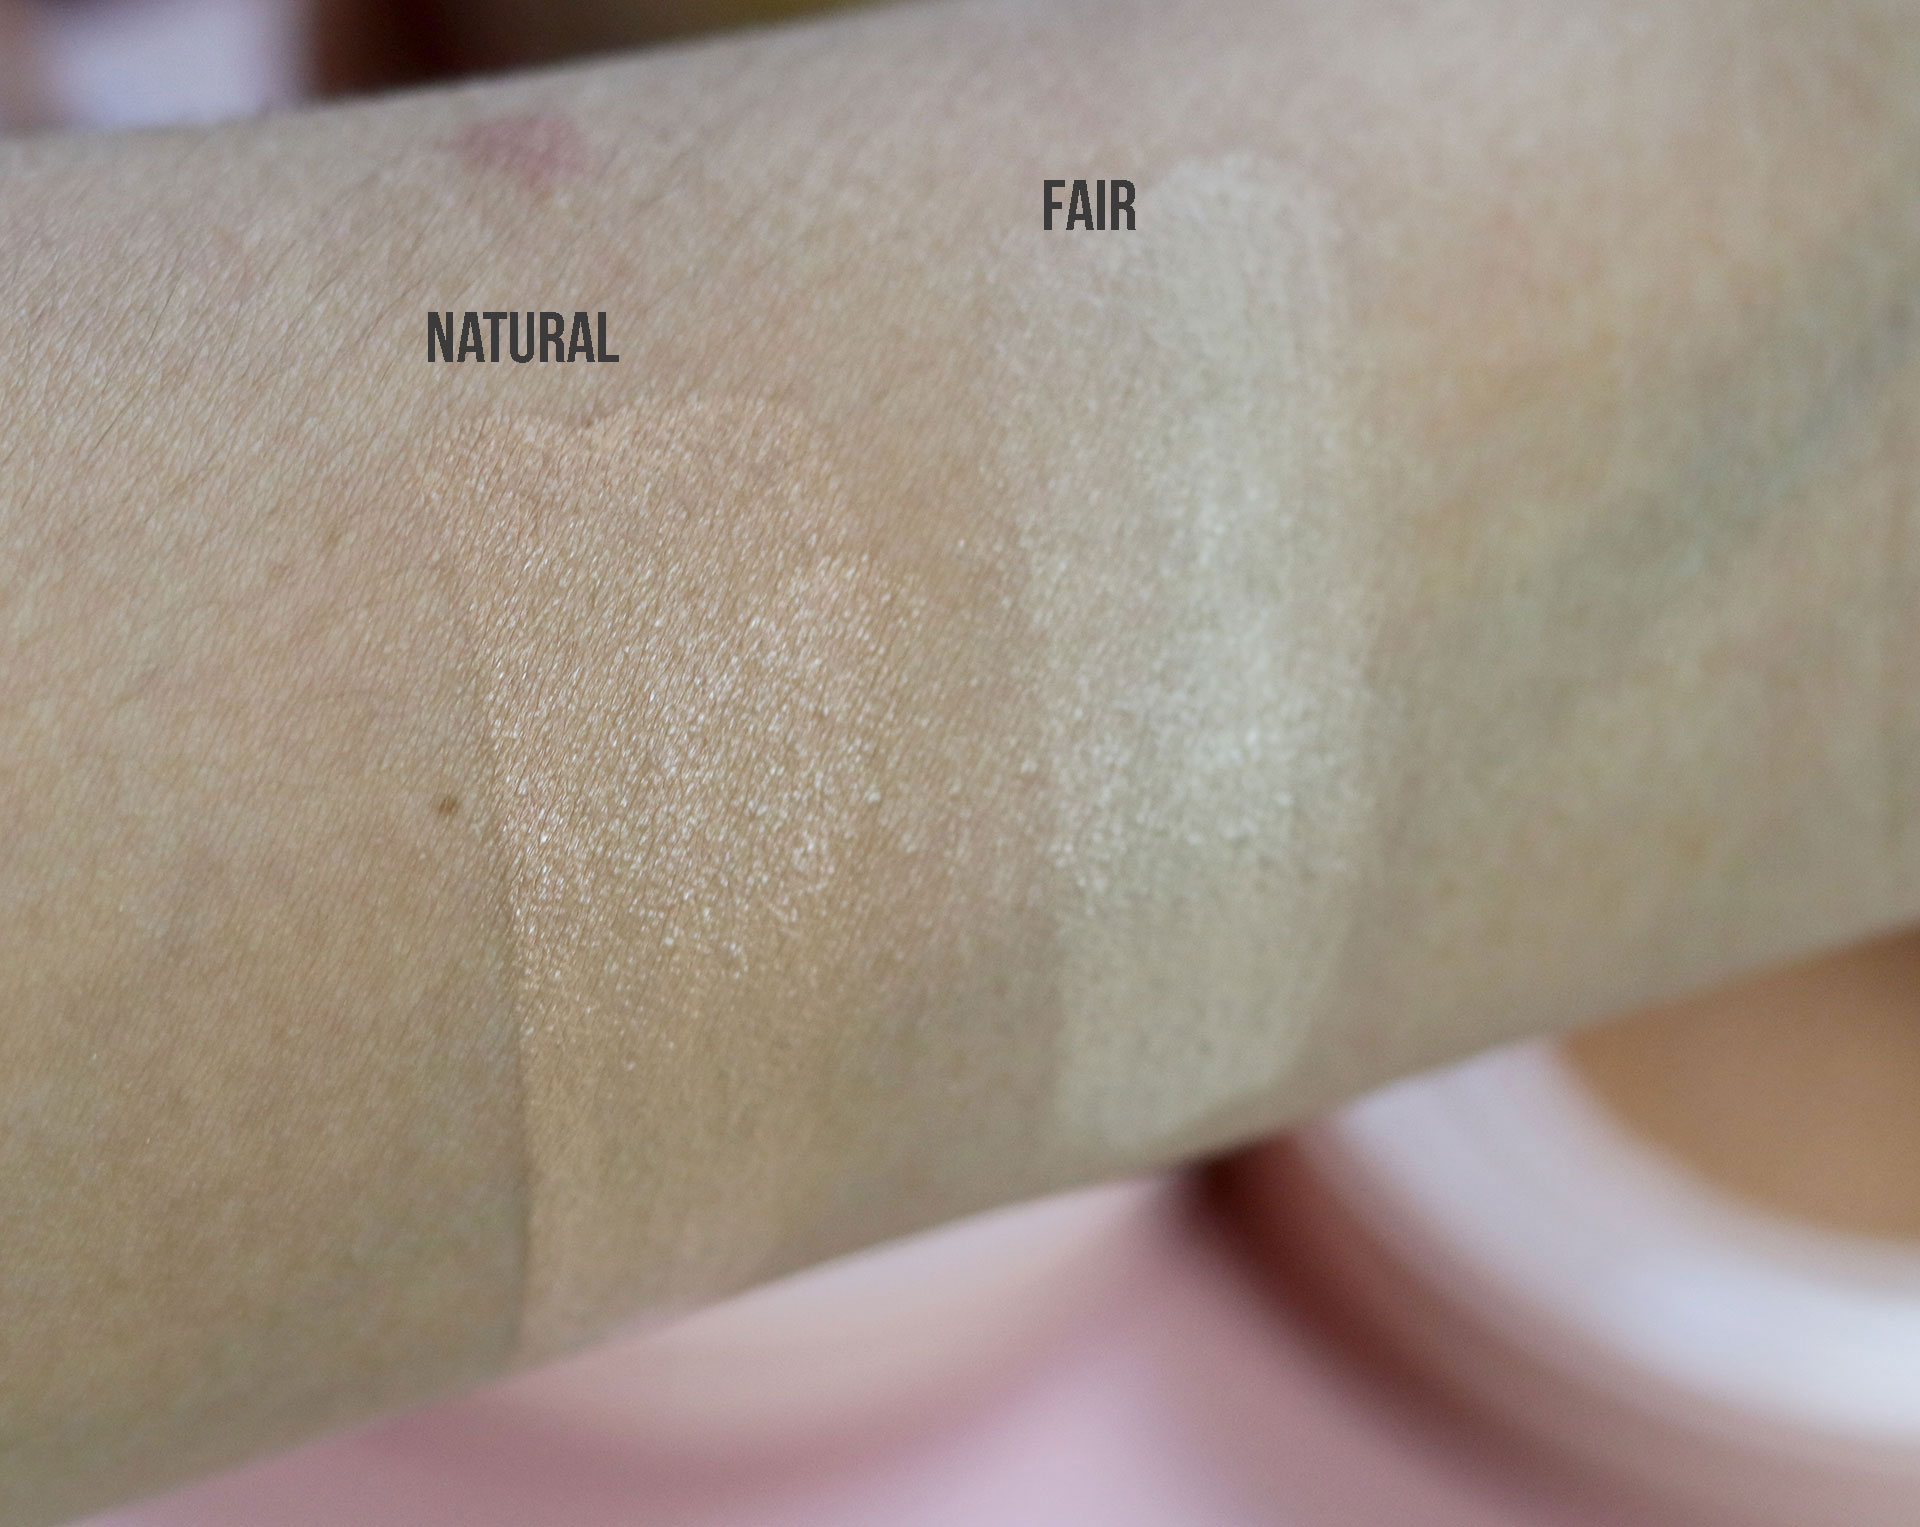 19 Gigi Hadid Maybelline Collection Review Swatches Photos - Gen-zel She Sings Beauty